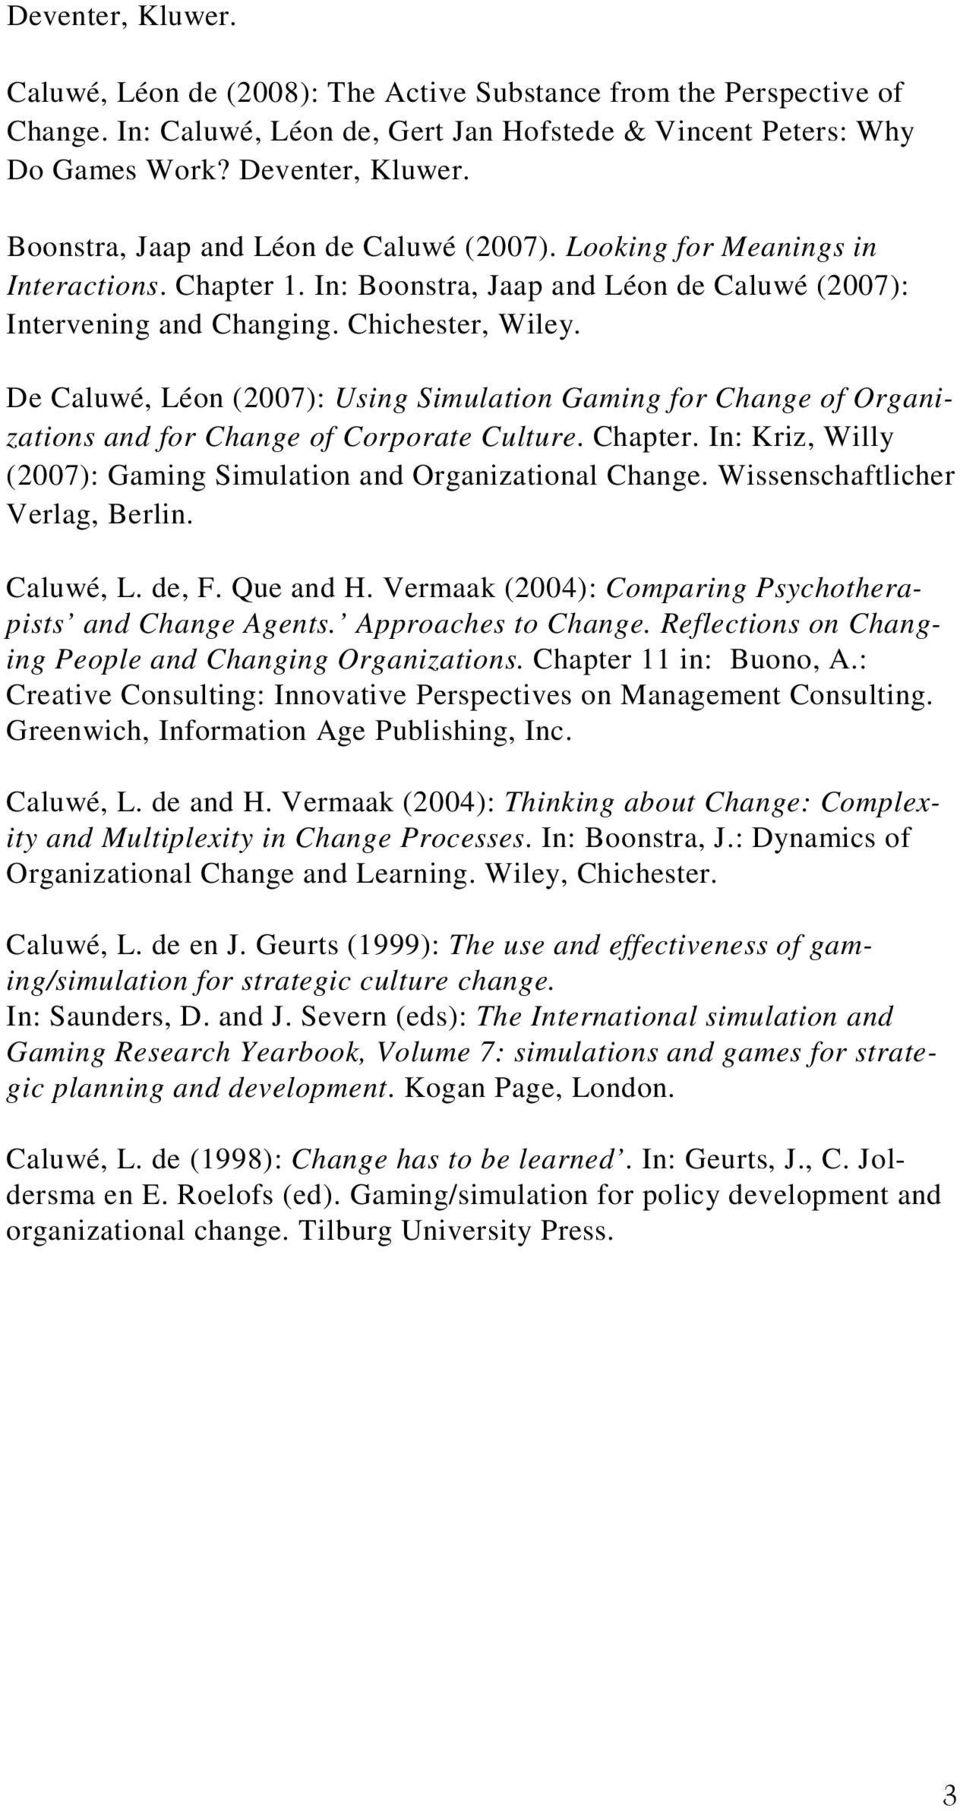 De Caluwé, Léon (2007): Using Simulation Gaming for Change of Organizations and for Change of Corporate Culture. Chapter. In: Kriz, Willy (2007): Gaming Simulation and Organizational Change.